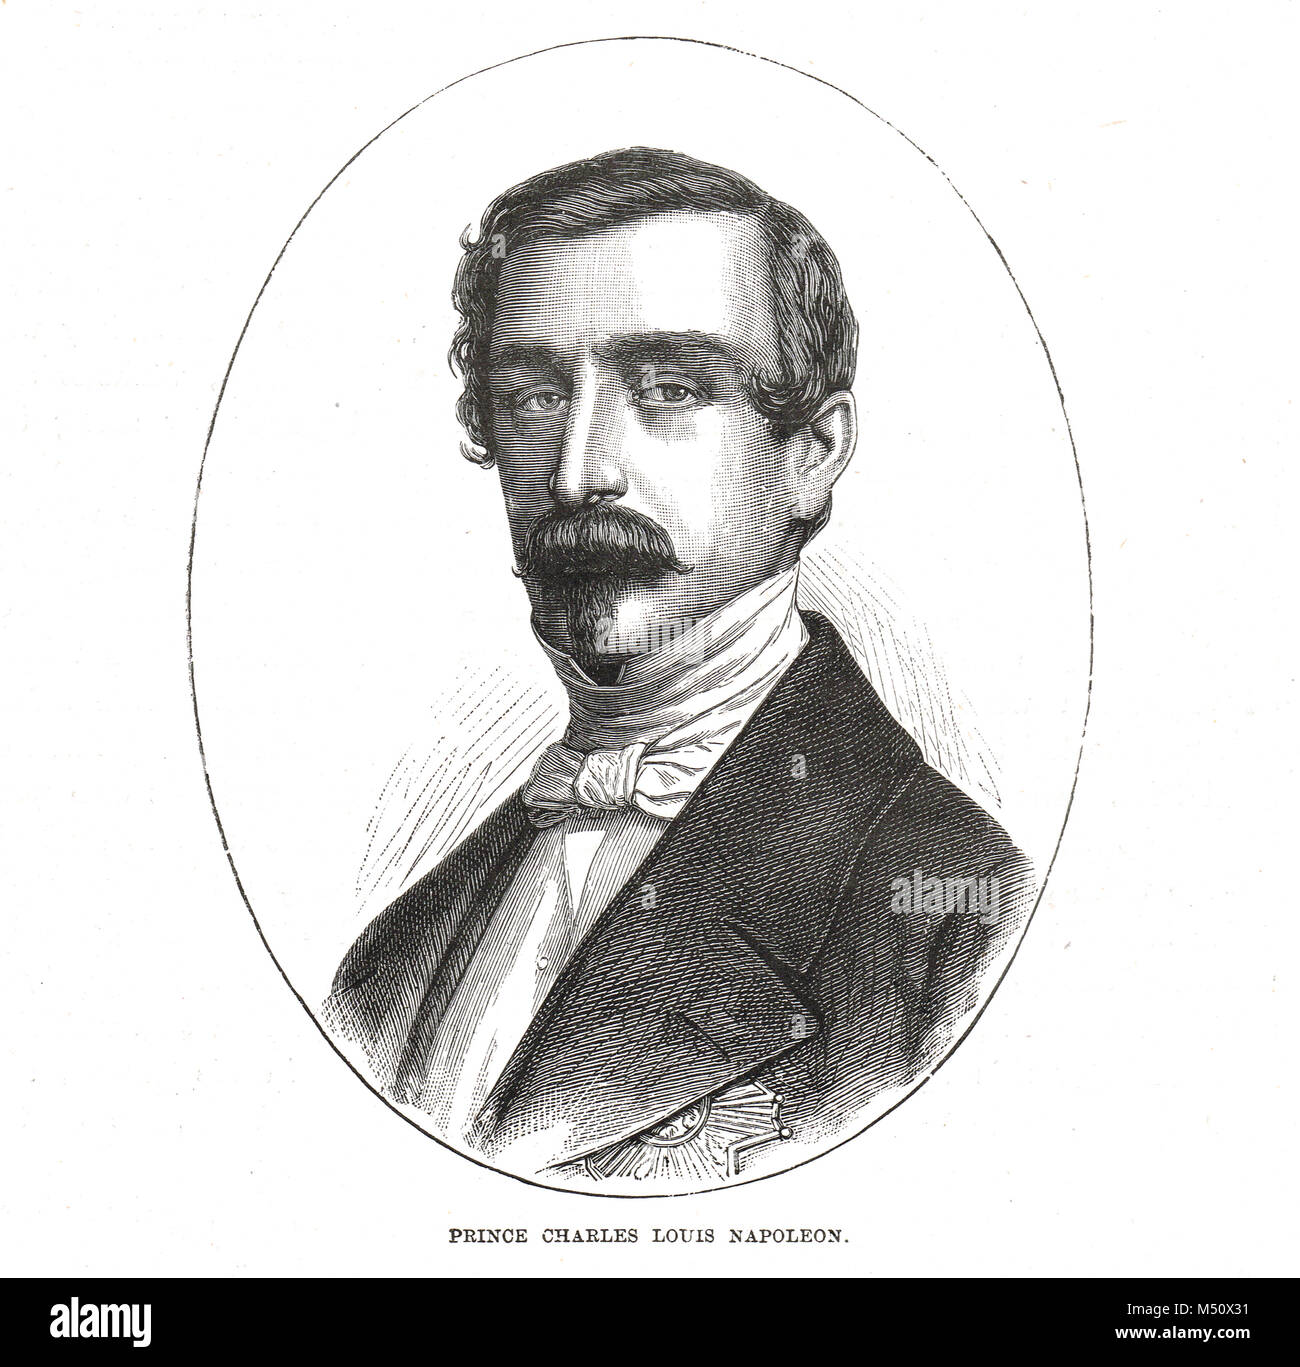 Napoleon III, Emperor of France, Charles Louis Napoleon Bonaparte, emperor of the second French Empire from 1852 - Stock Image